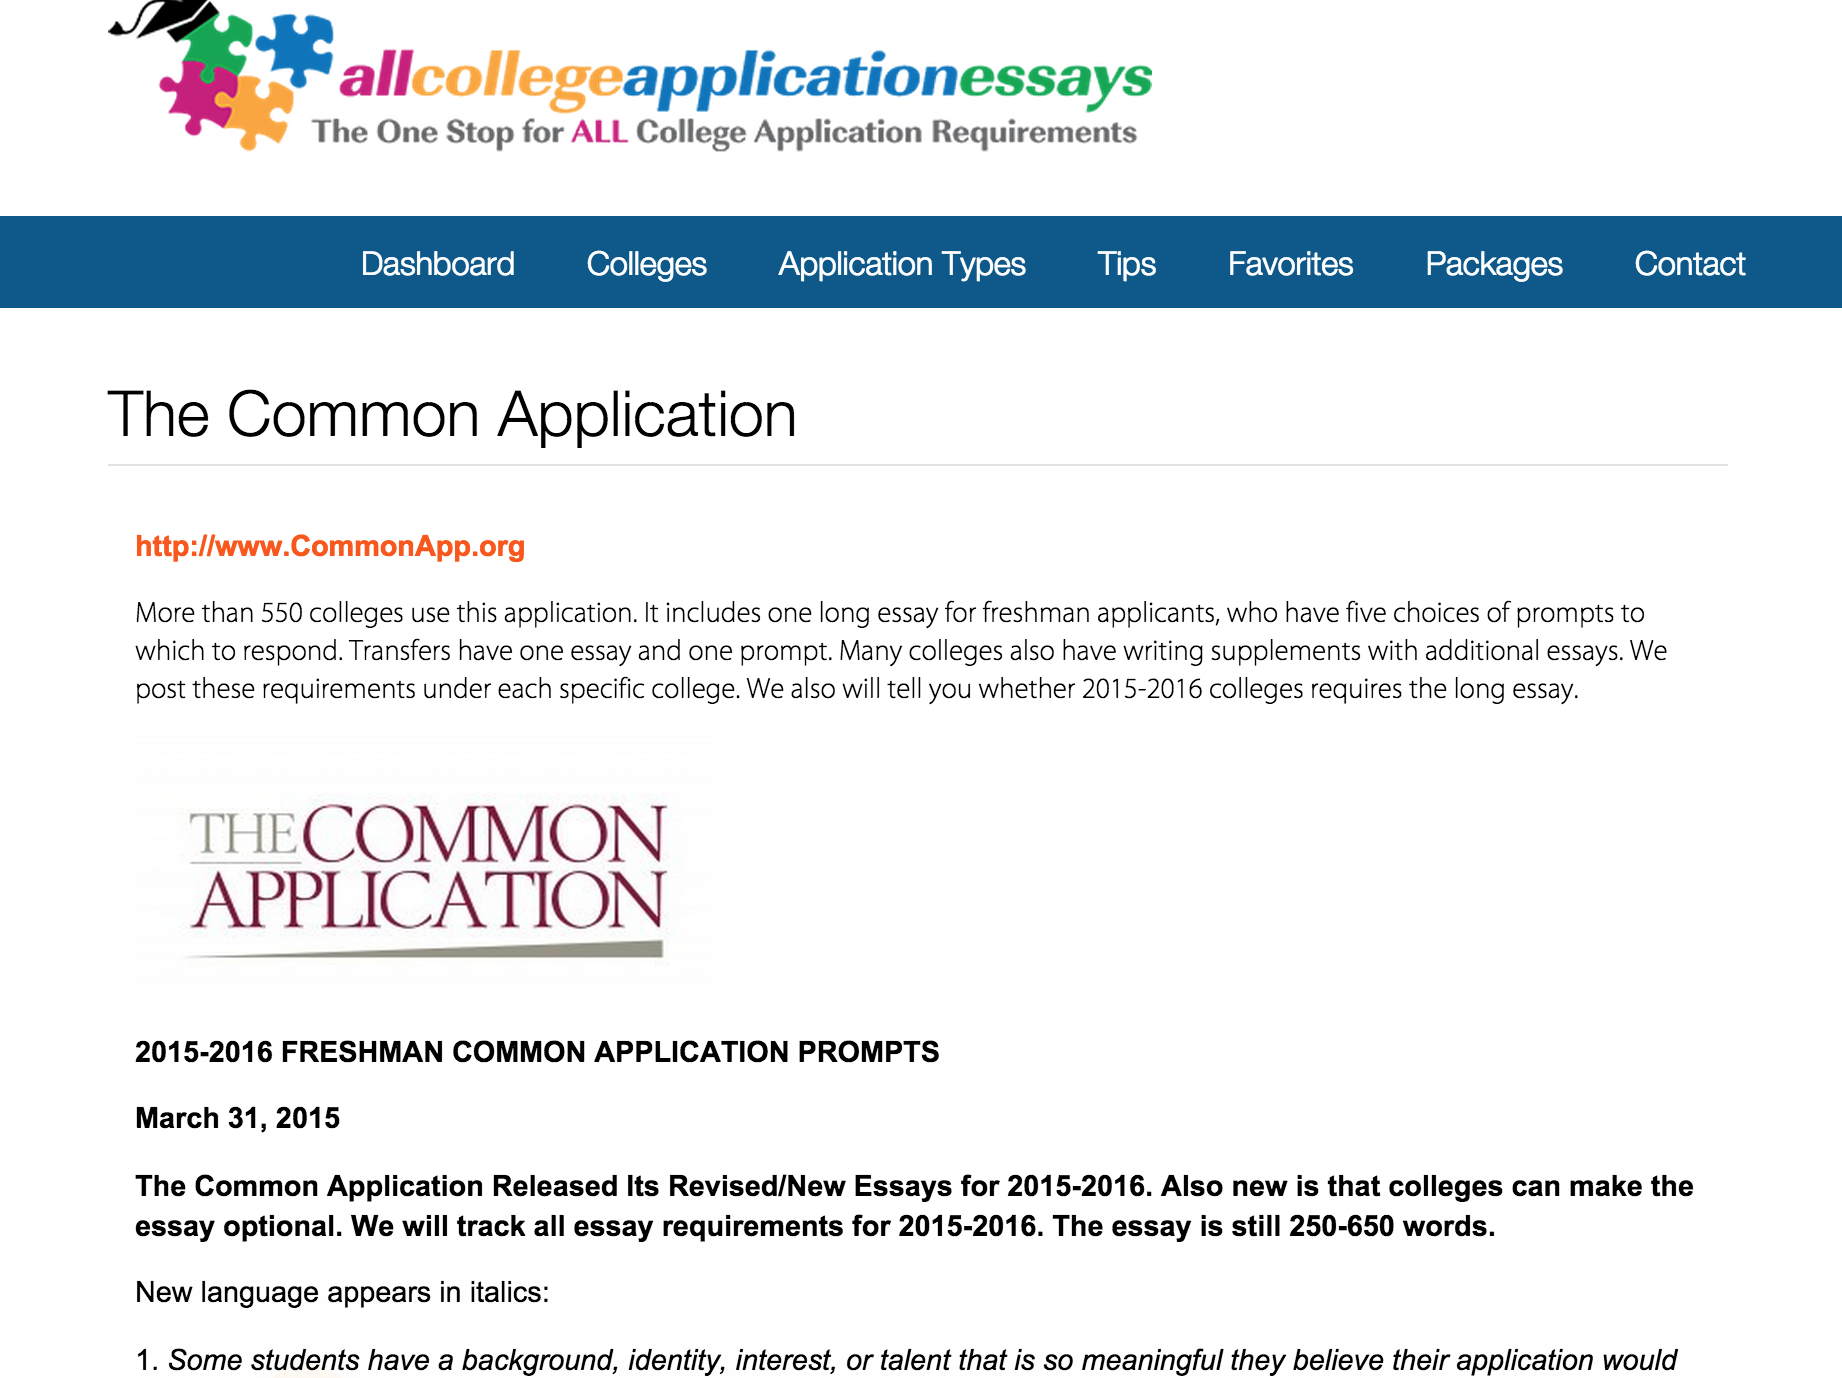 002 Common App Essay Questions Example College Help Online Admissions How To Write The Screen Shot Dreaded 2017 2017-18 Full